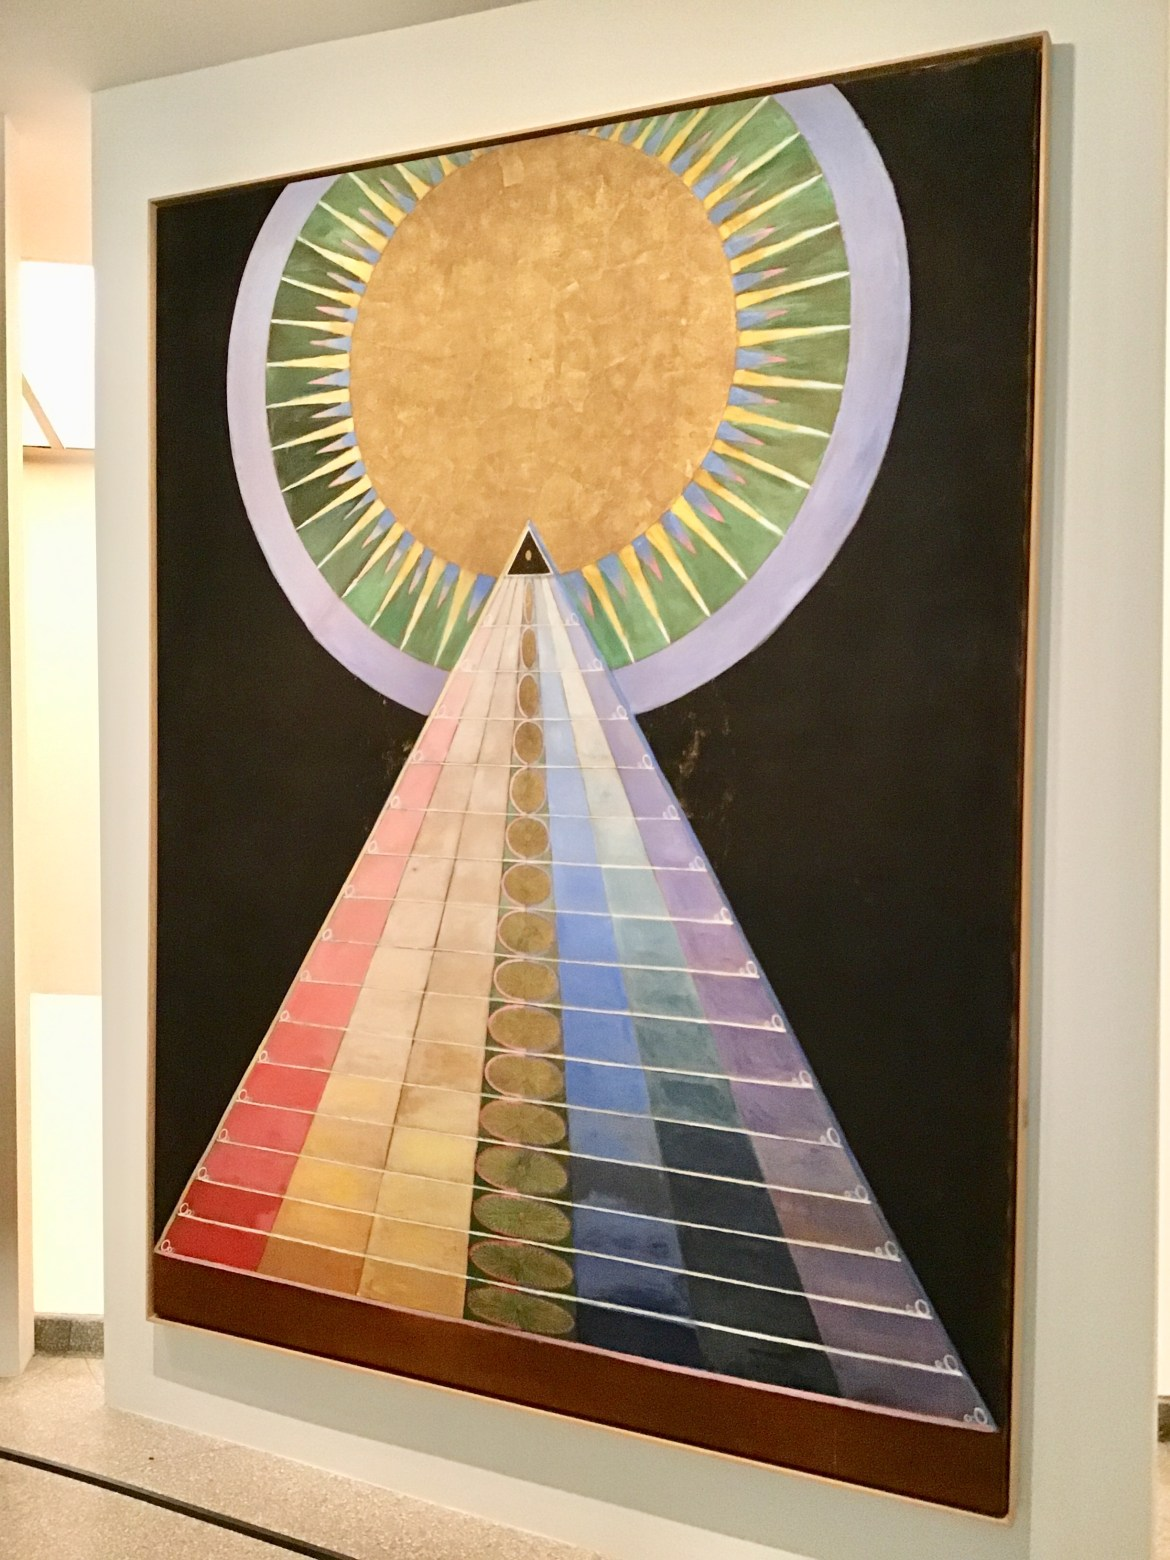 ilma af Klint's work at the Guggenheim Museum in New York City. (Photo: Ceara Rossetti/Gildshire)